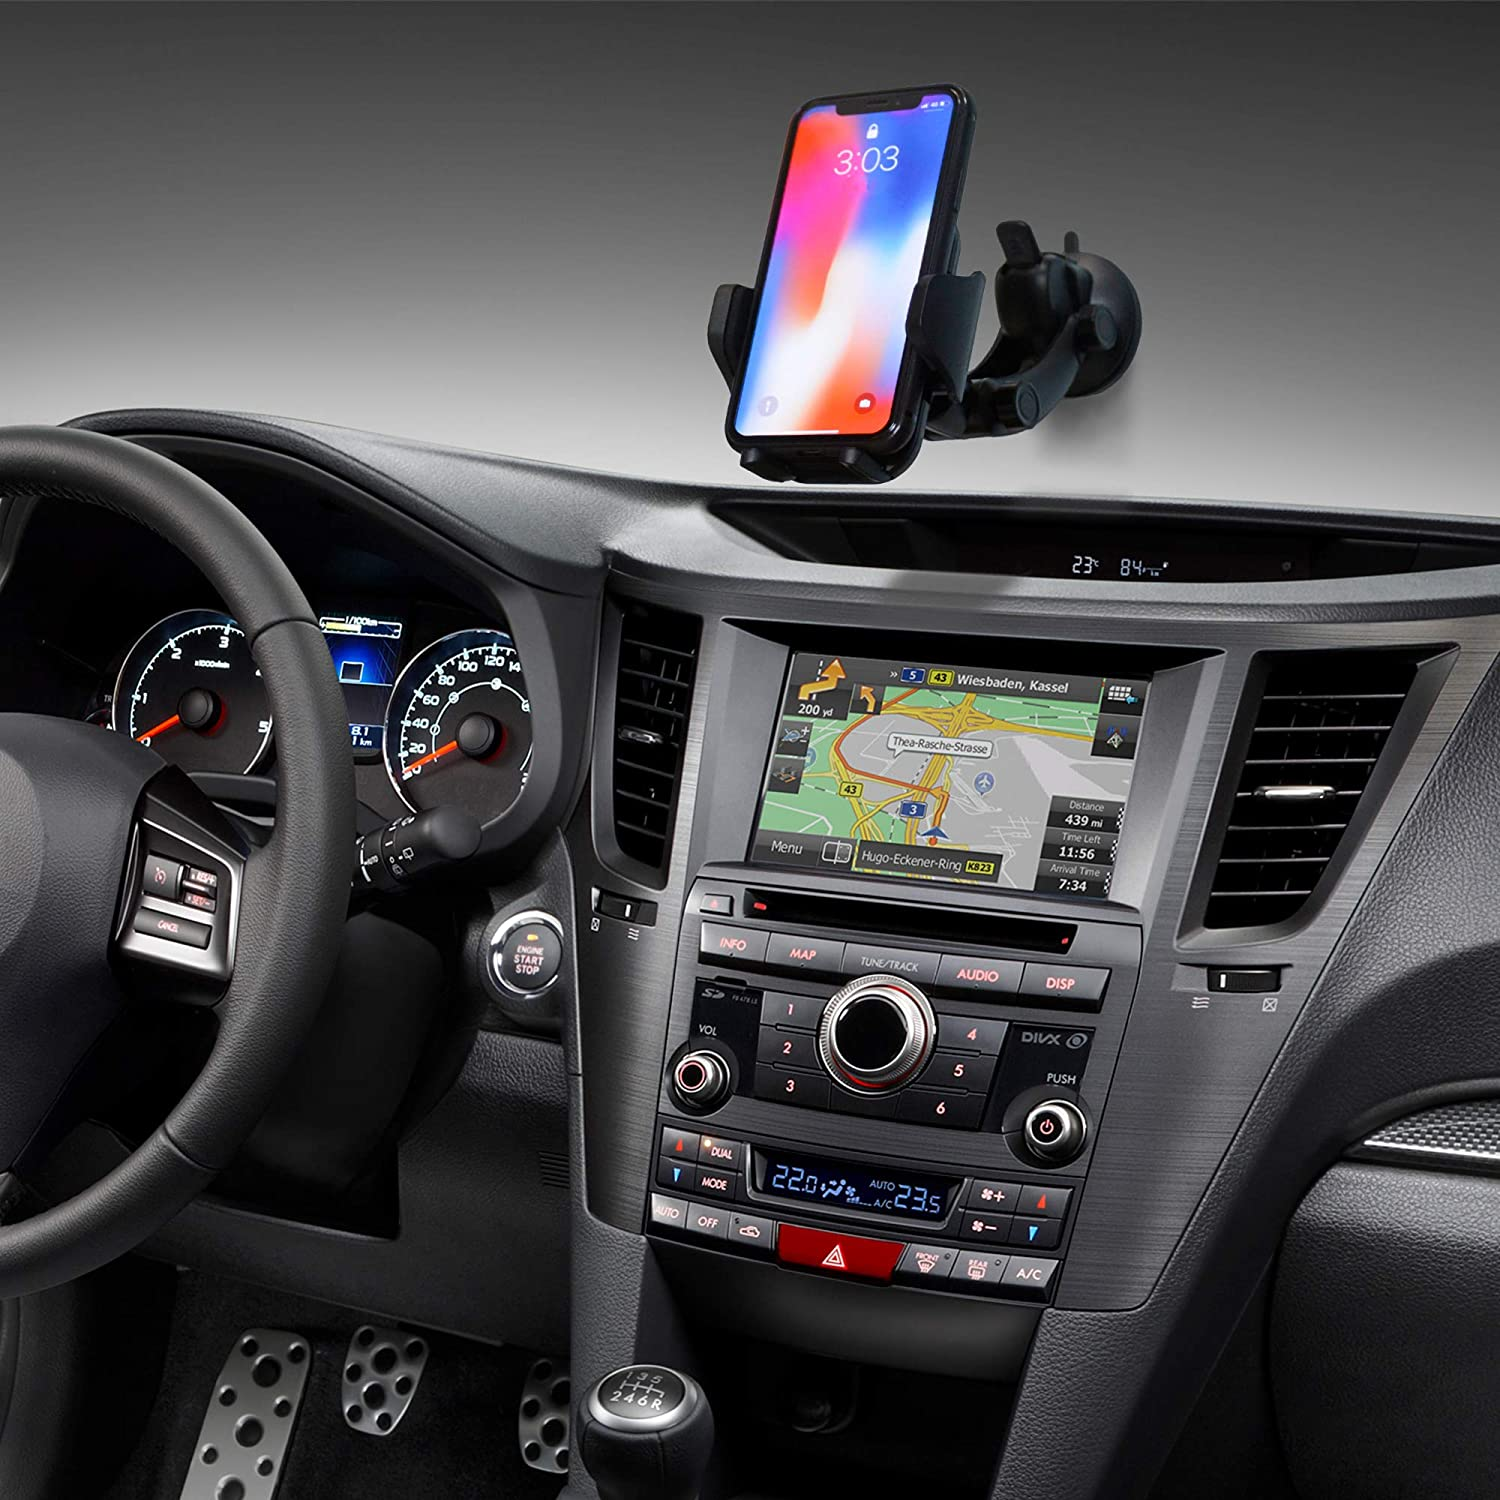 Black TIDLAY Car Mount Holder Universal Phone Holder 360 Degree Rotation for iPhone X//8//8Plus//7//7Plus//6s//6Plus//5S Galaxy S5//S6//S7//S8 LG Car Stand and More Google Nexus